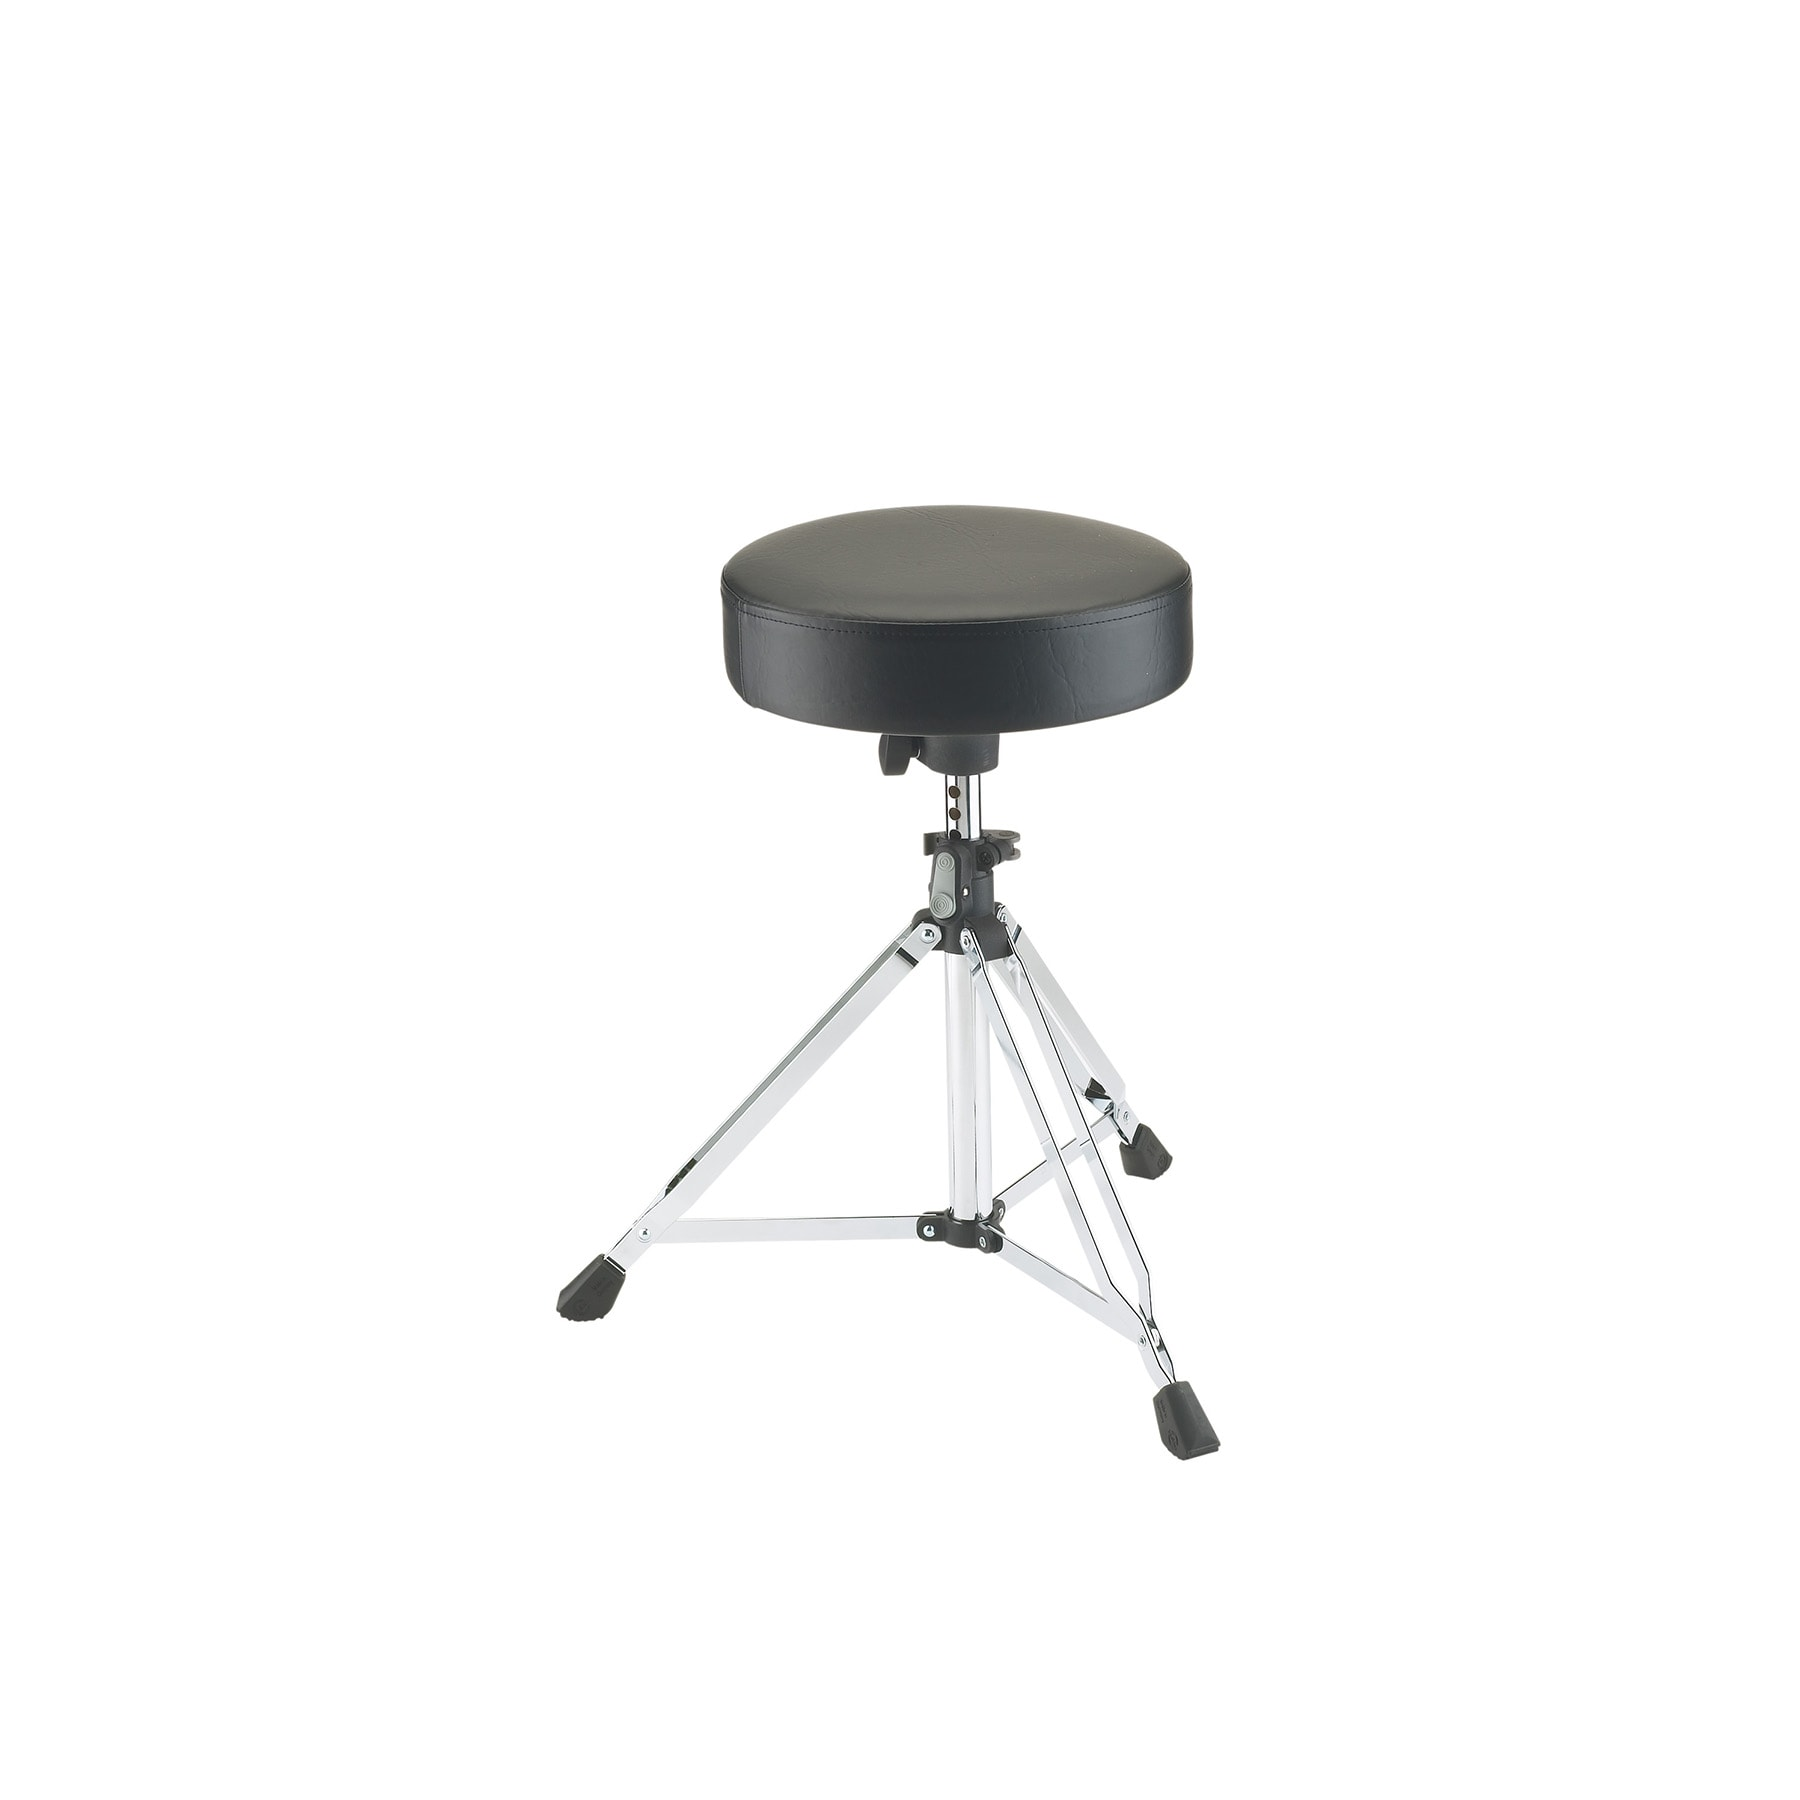 KM14020 - Drummer's throne »picco«